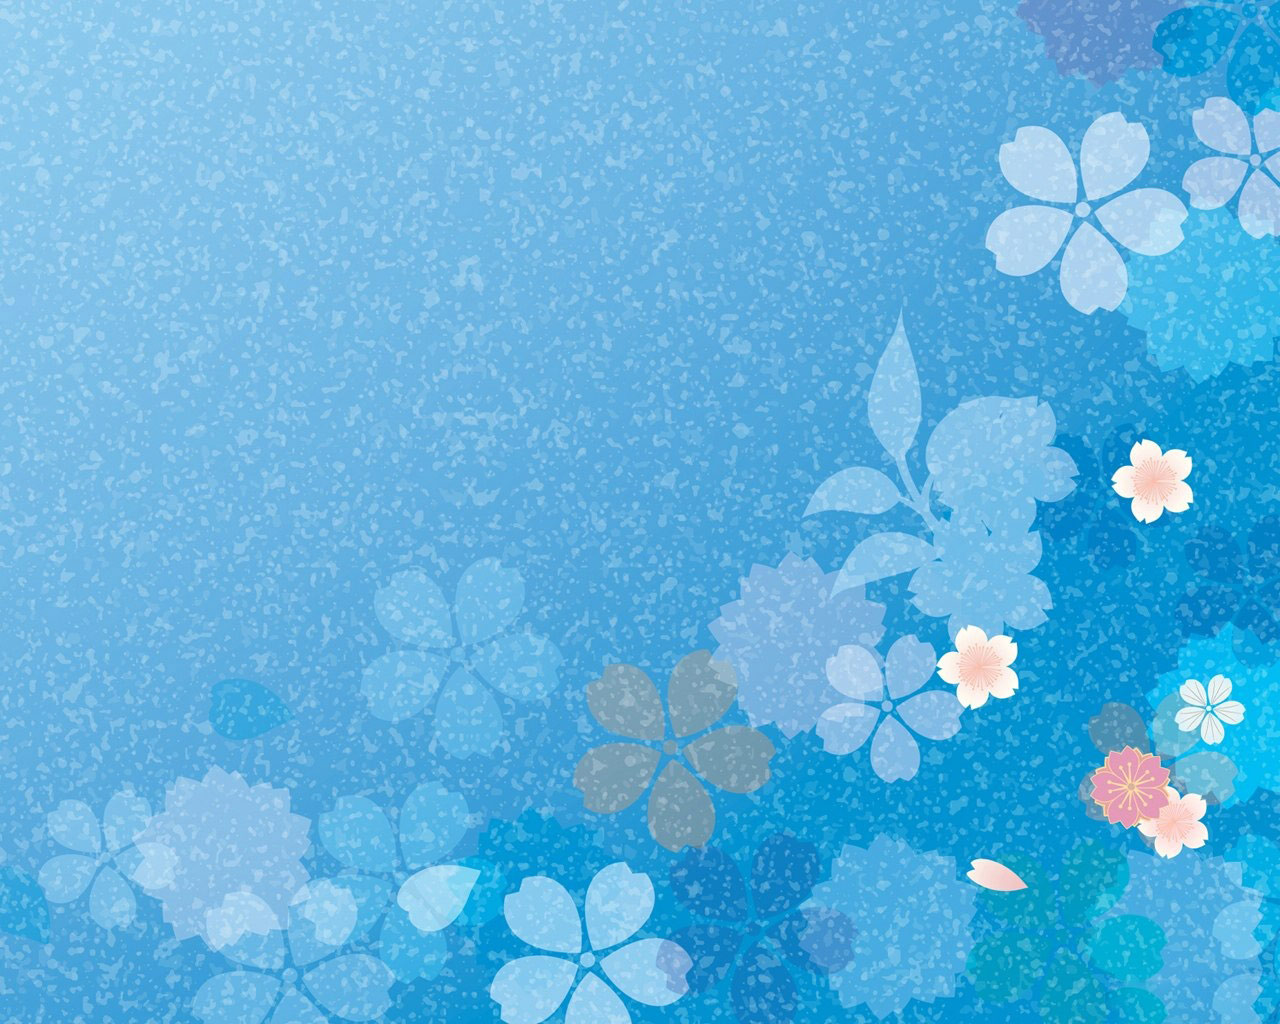 Flower Backgrounds Wallpapers 1280x1024